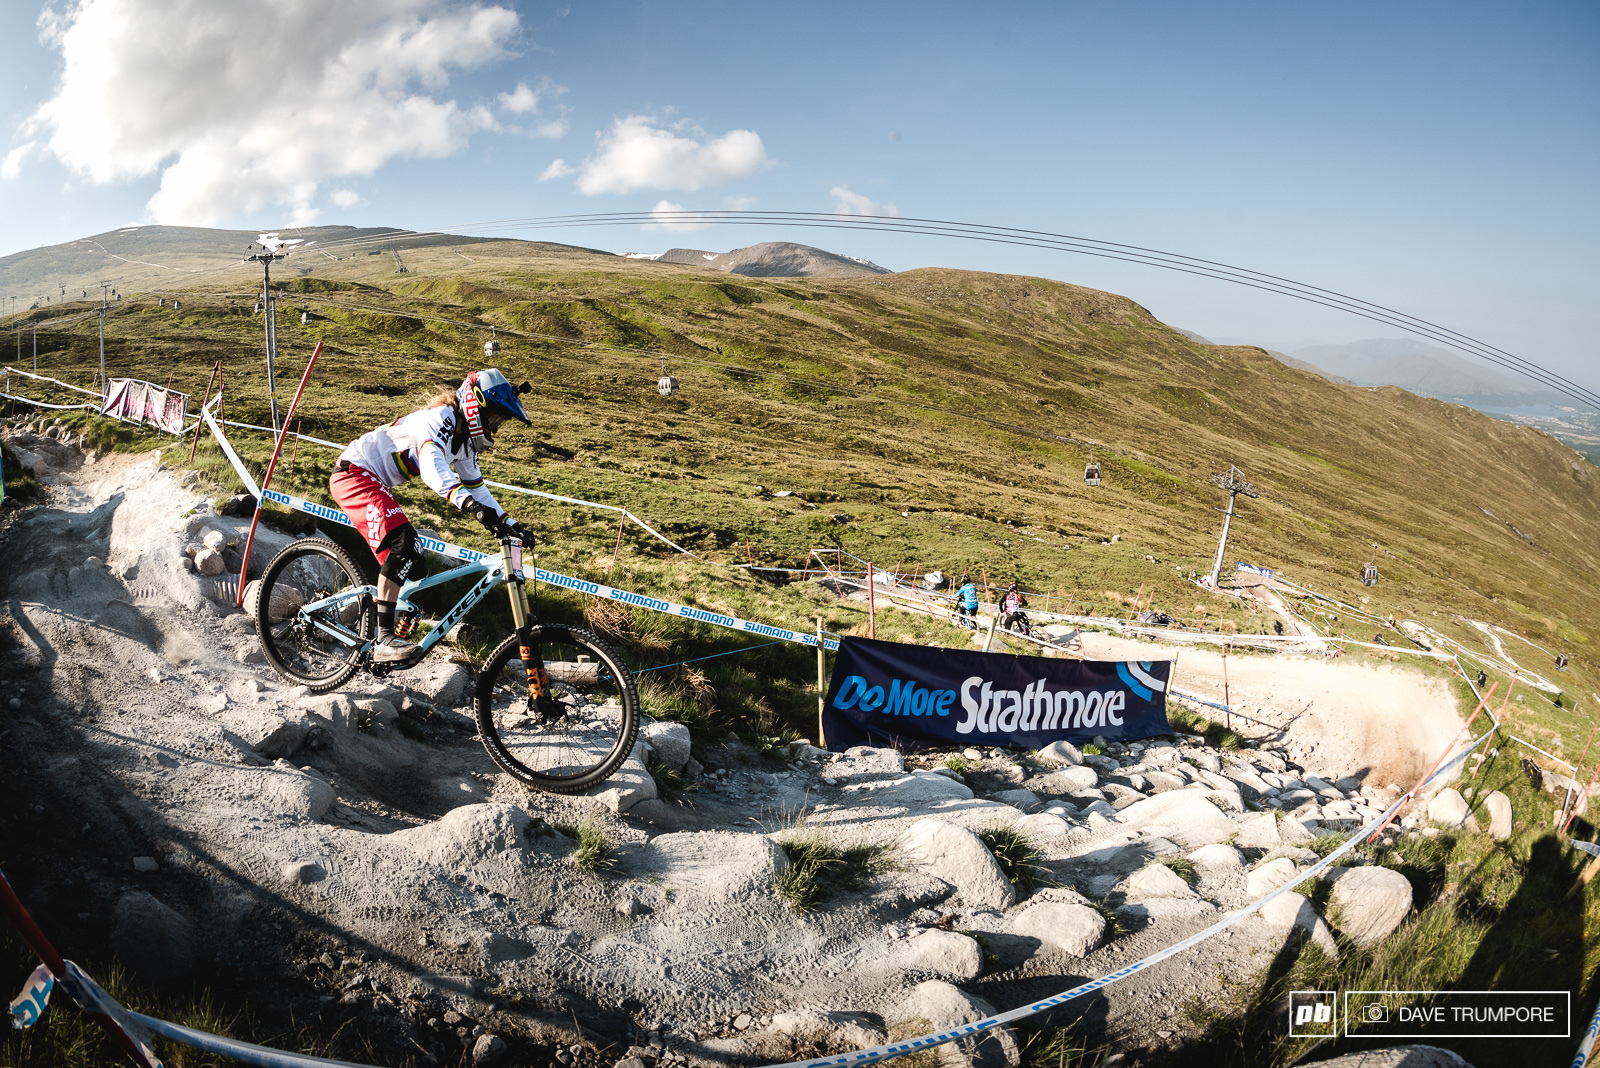 Dominant is the only way to describe Rachel Atherton s racing right now taking her 9th consecutive WC win in a row.